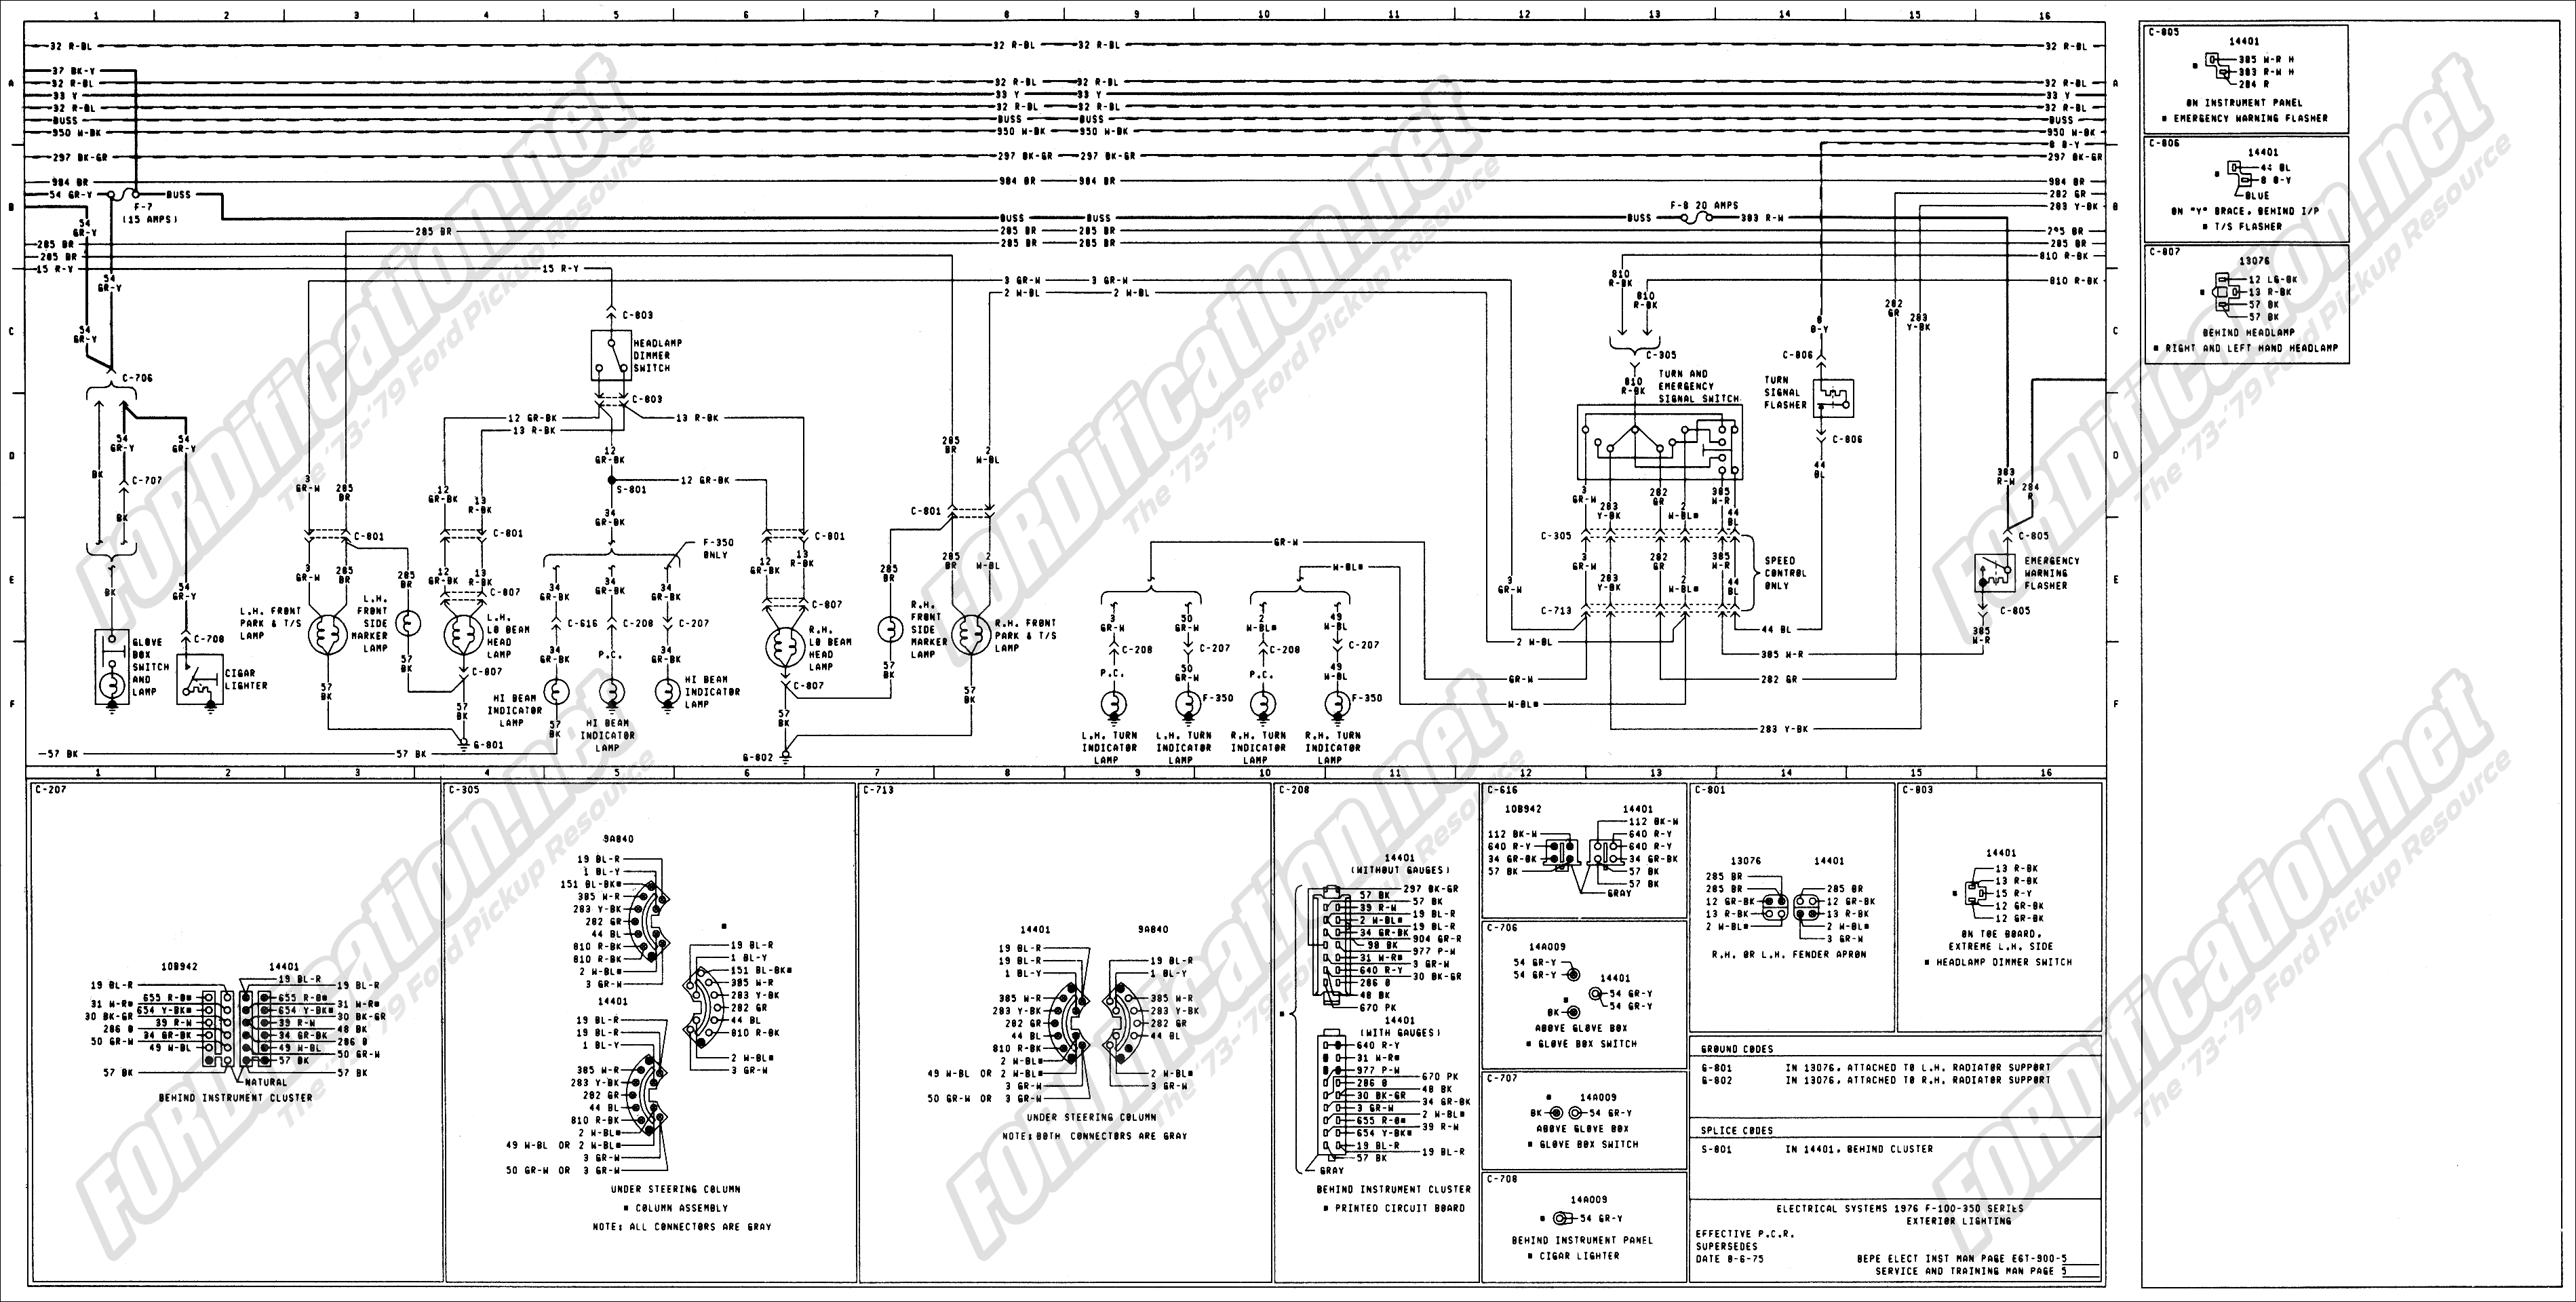 wiring_76master_5of9 1973 1979 ford truck wiring diagrams & schematics fordification net 1977 Ford F100 Custom at readyjetset.co